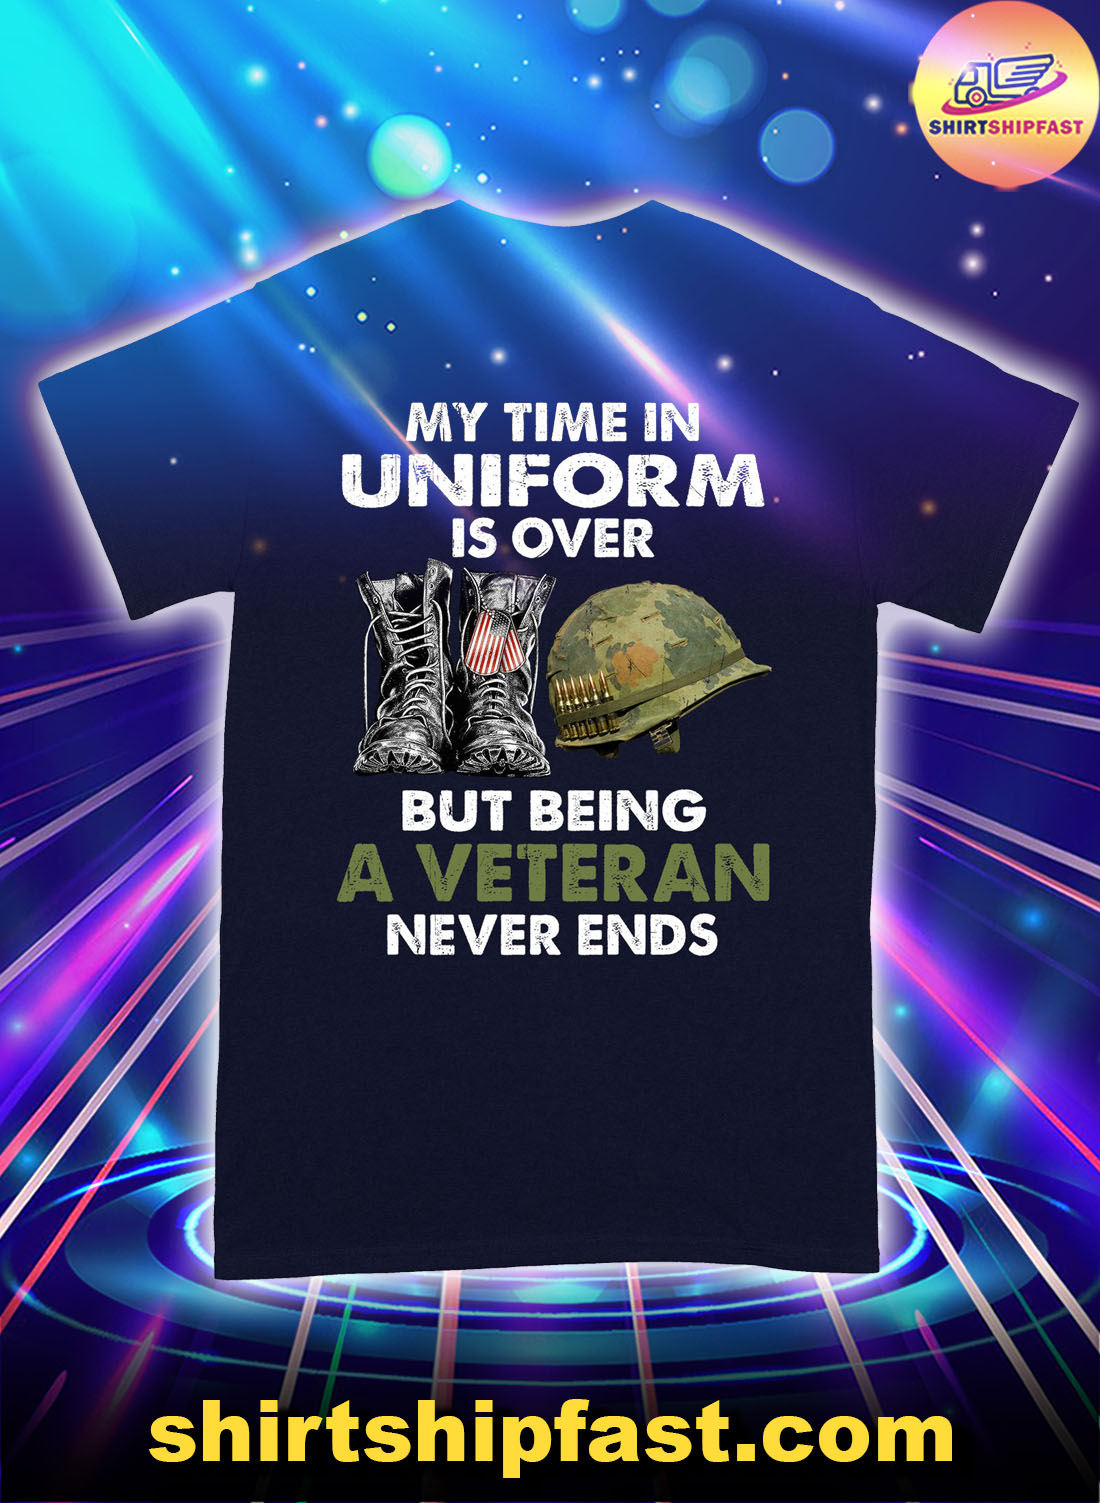 My time in uniform is over but being a veteran never ends shirt